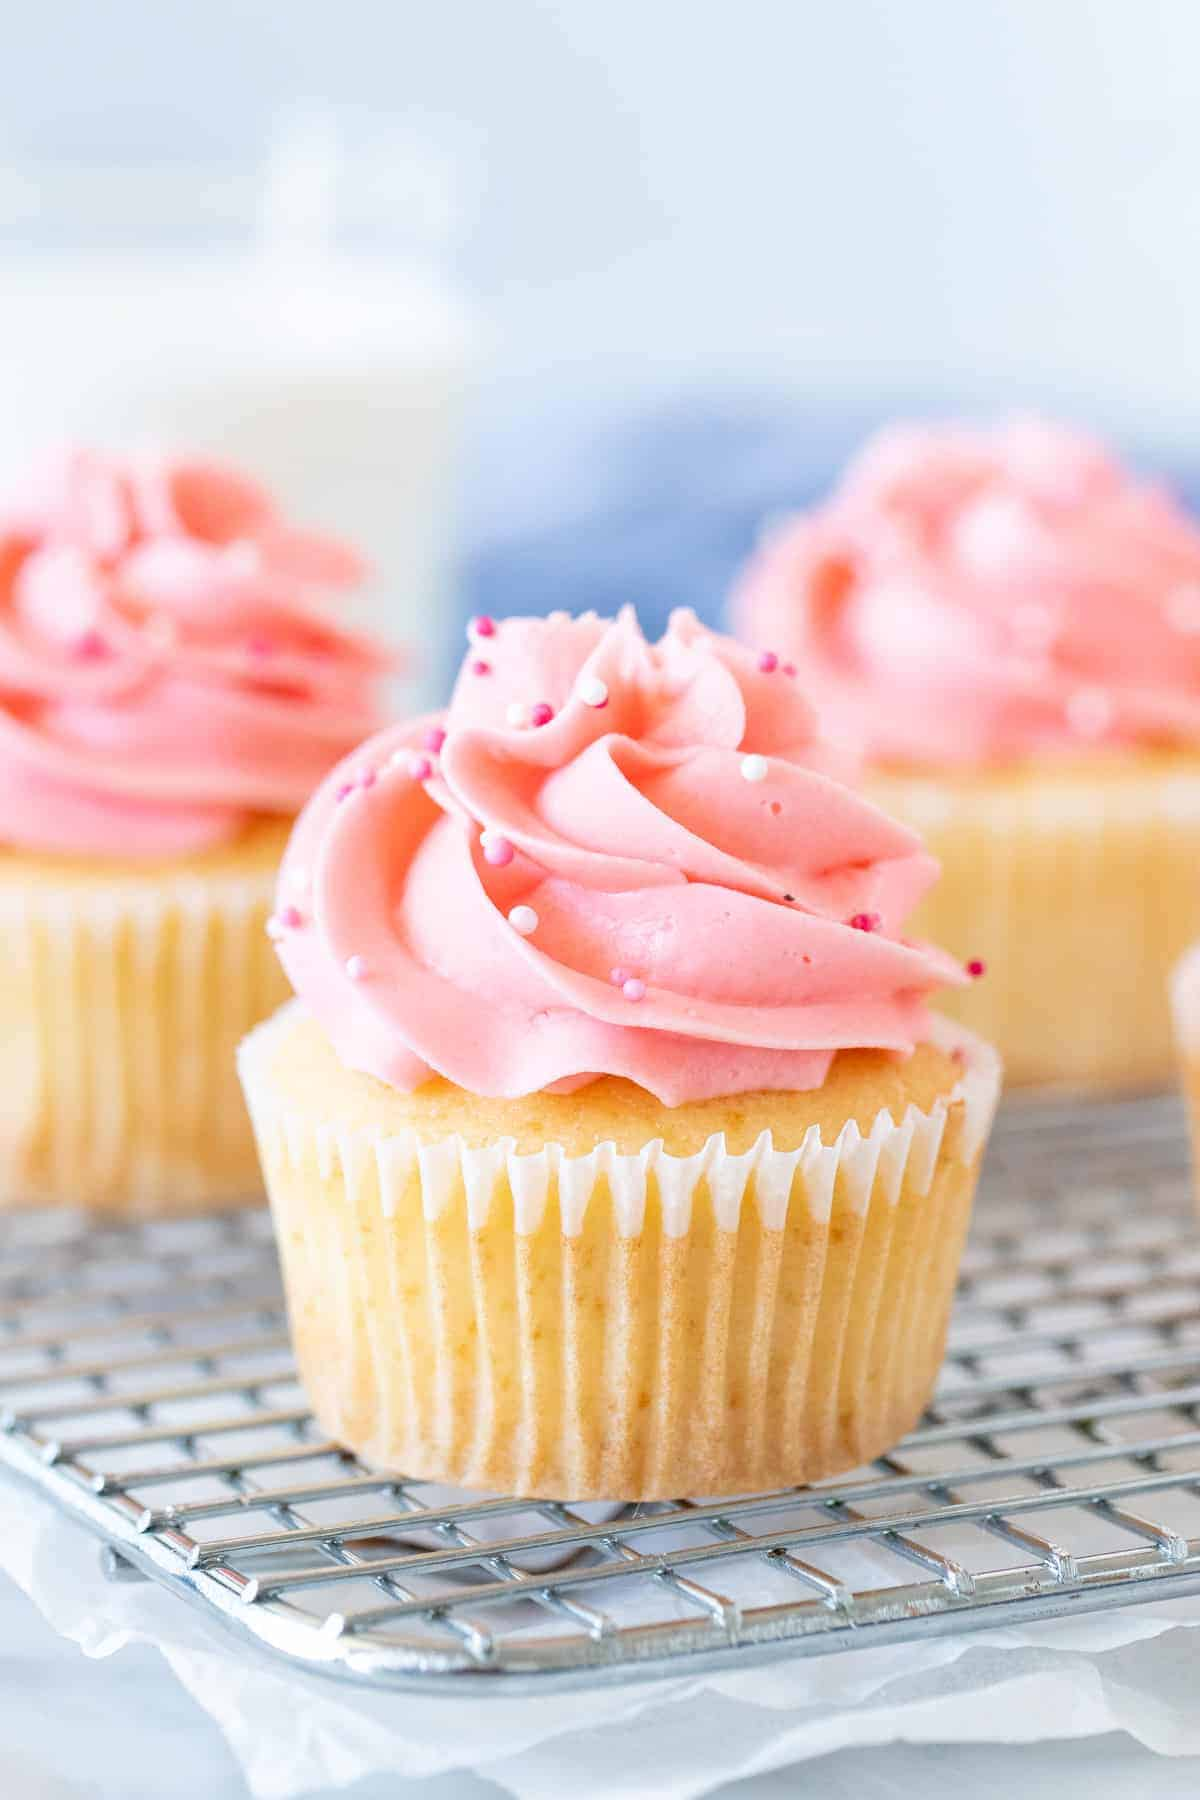 Vanilla cupcakes with pink frosting on cooling rack.